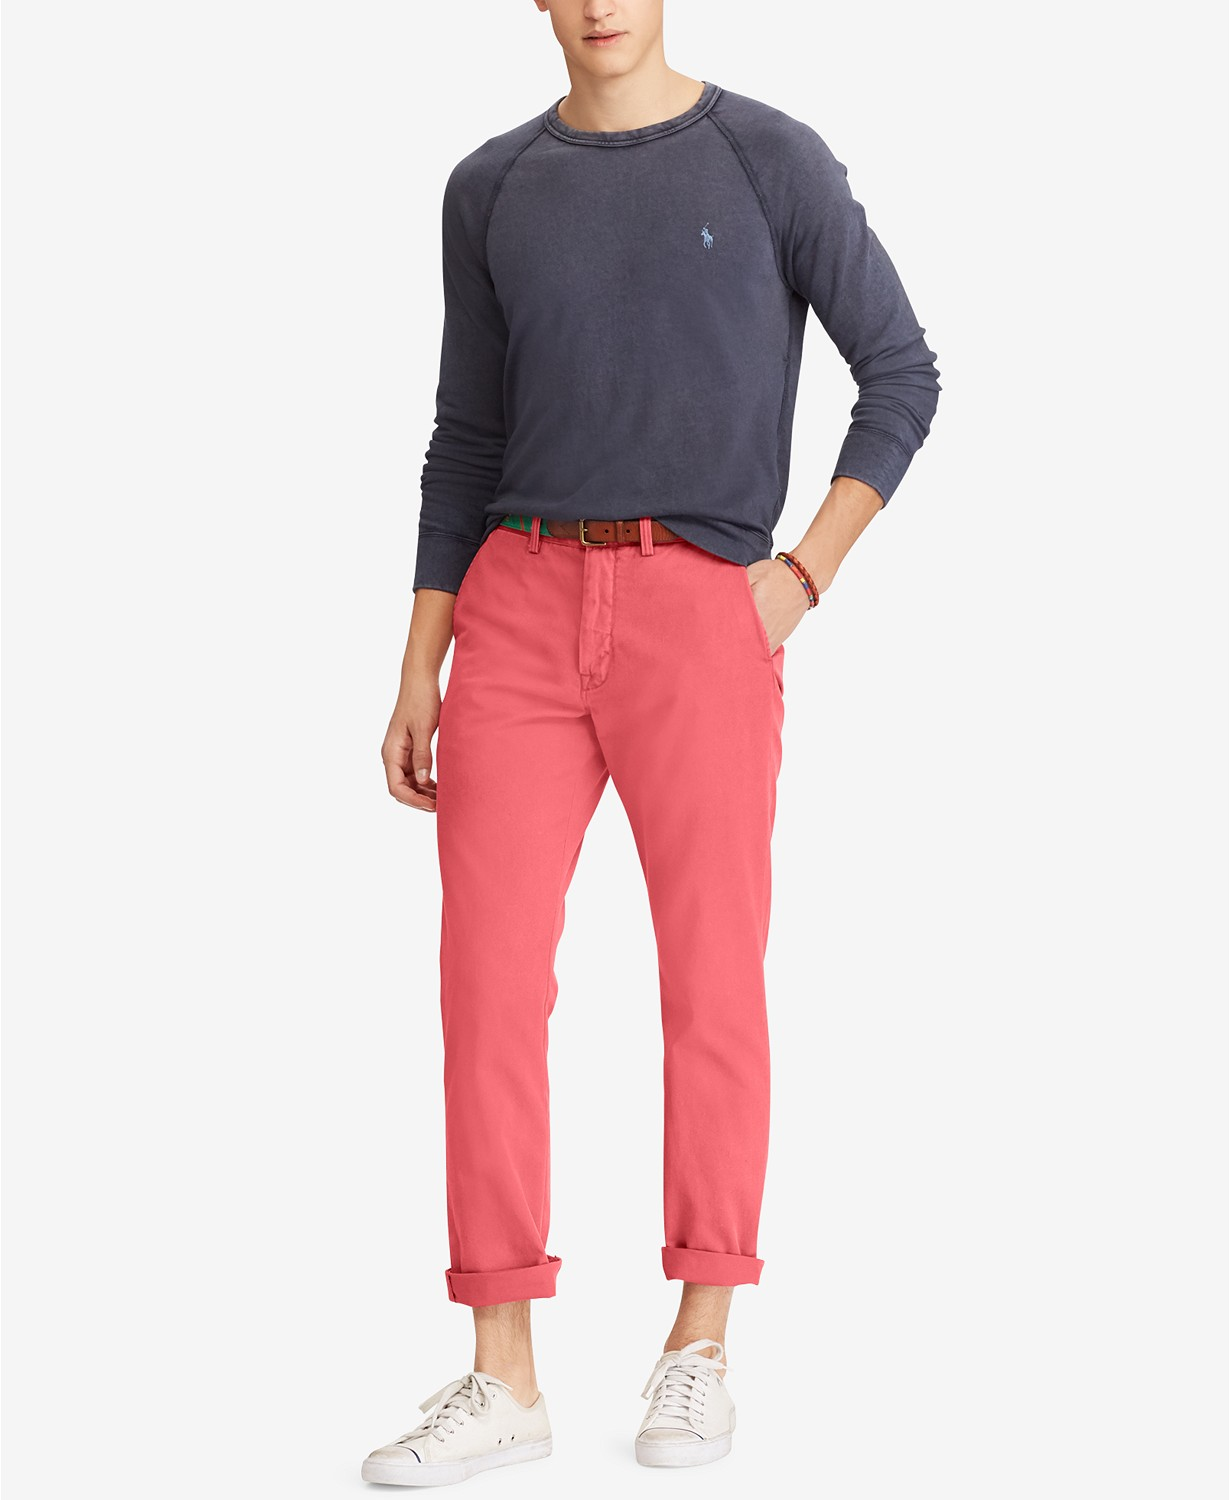 Pants salmon with colors what go What to